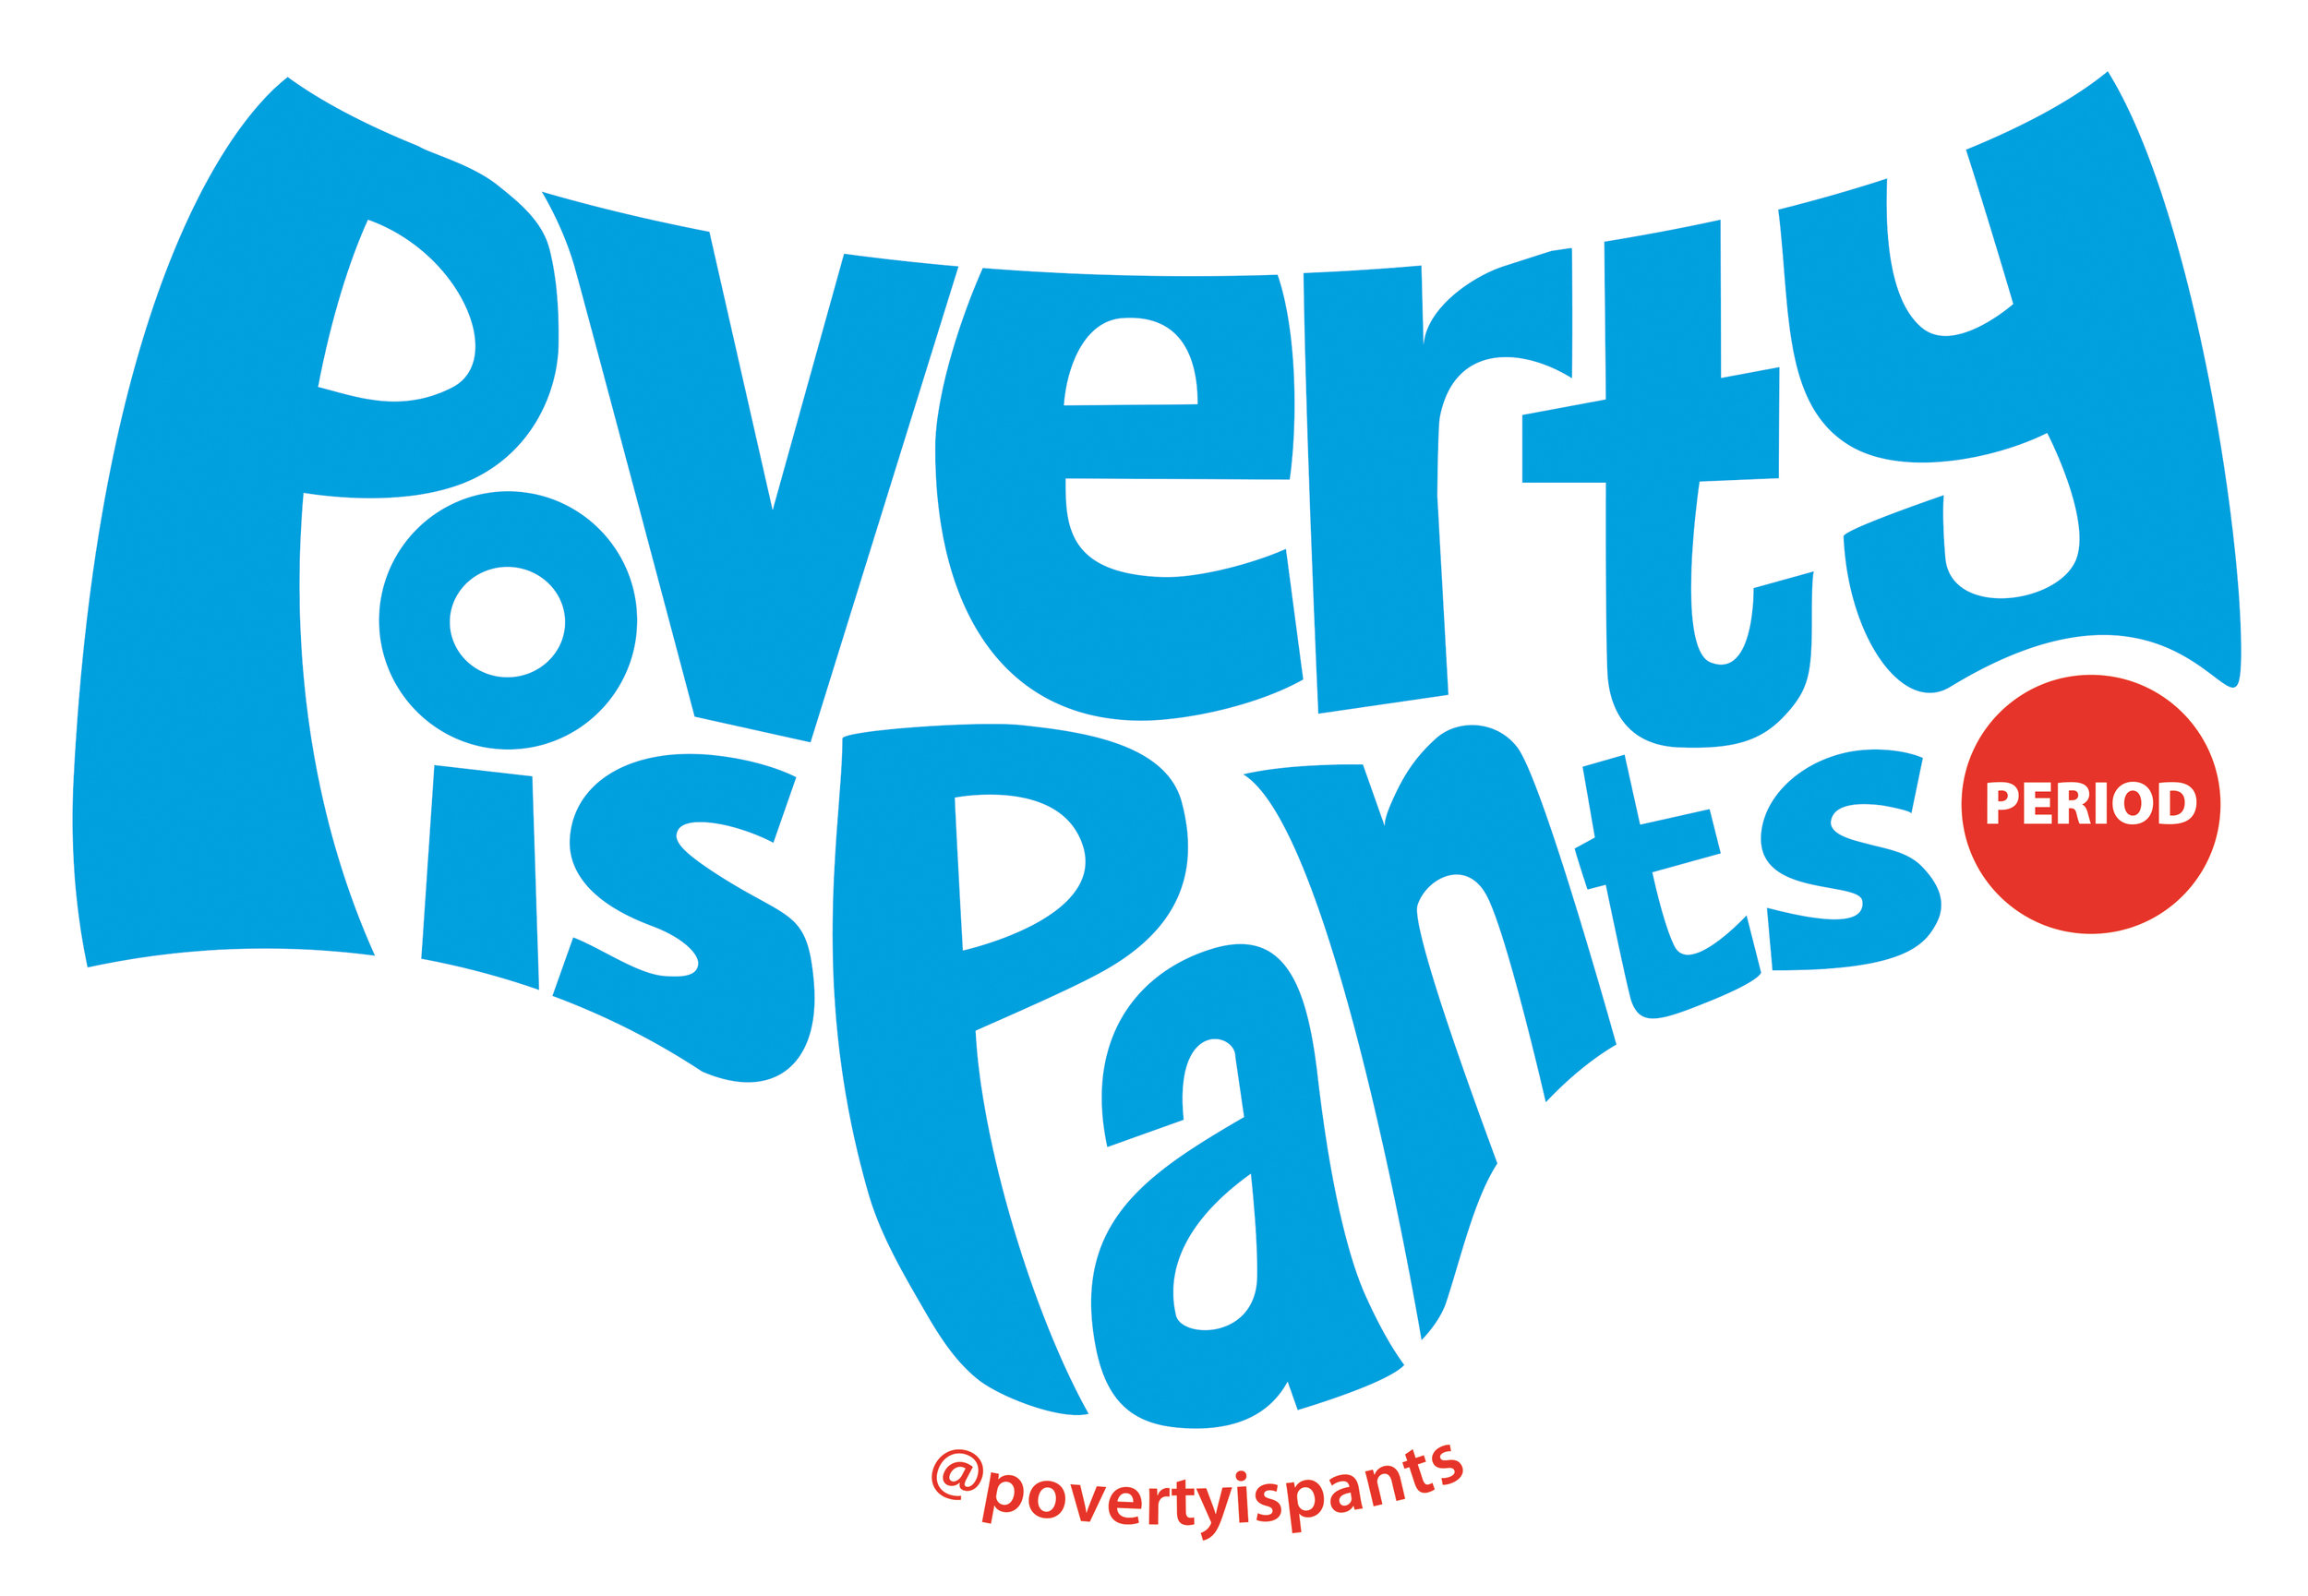 POVERTYISPANTS_LOGO.jpg